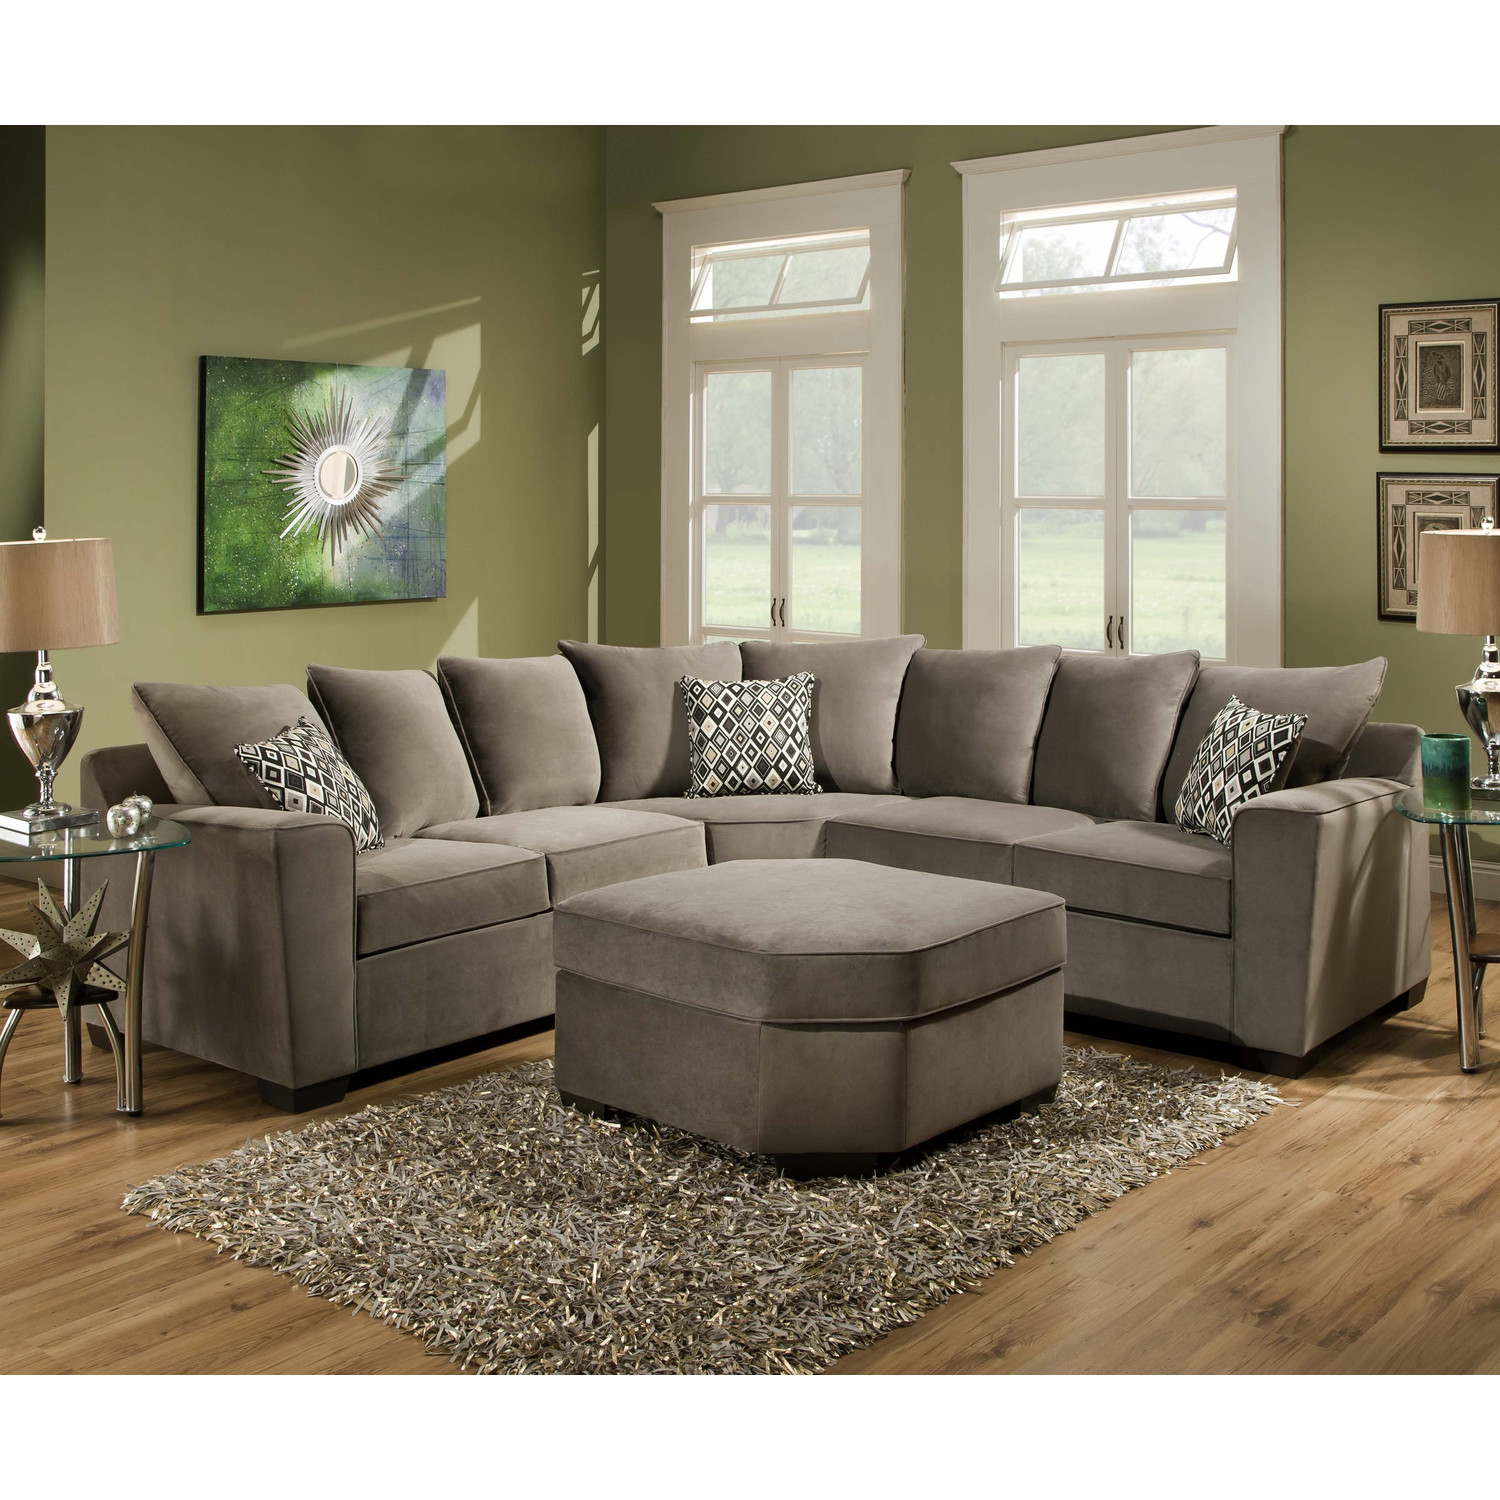 Amazing sofa sectionals for home interior design with leather sectional sofa and sectional sleeper sofa